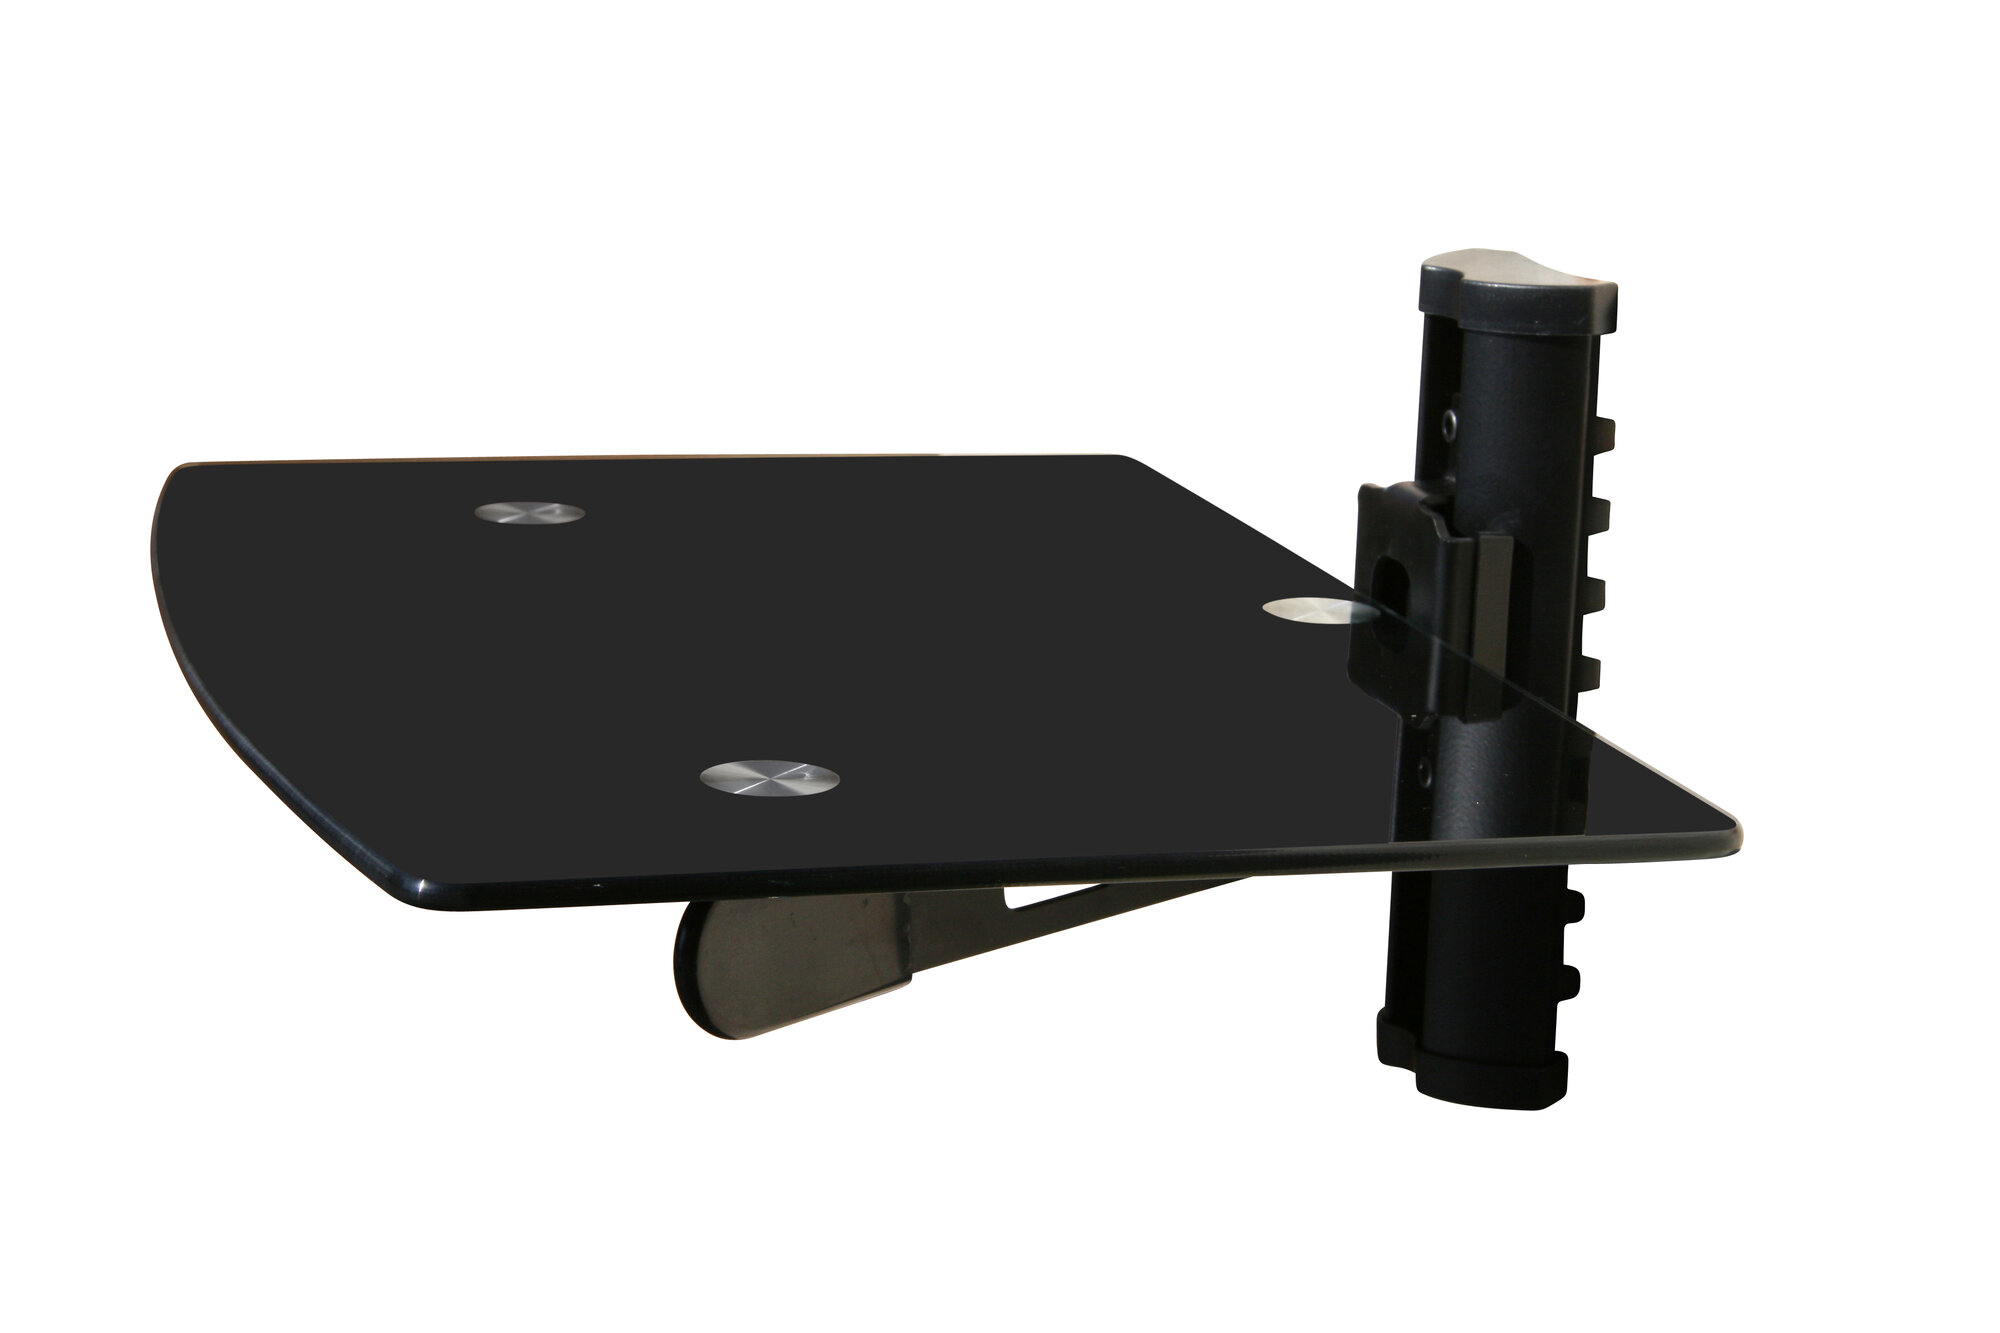 Wall Mounted Tv And Component Shelf Combo Dvd Dvr Vcr Wall